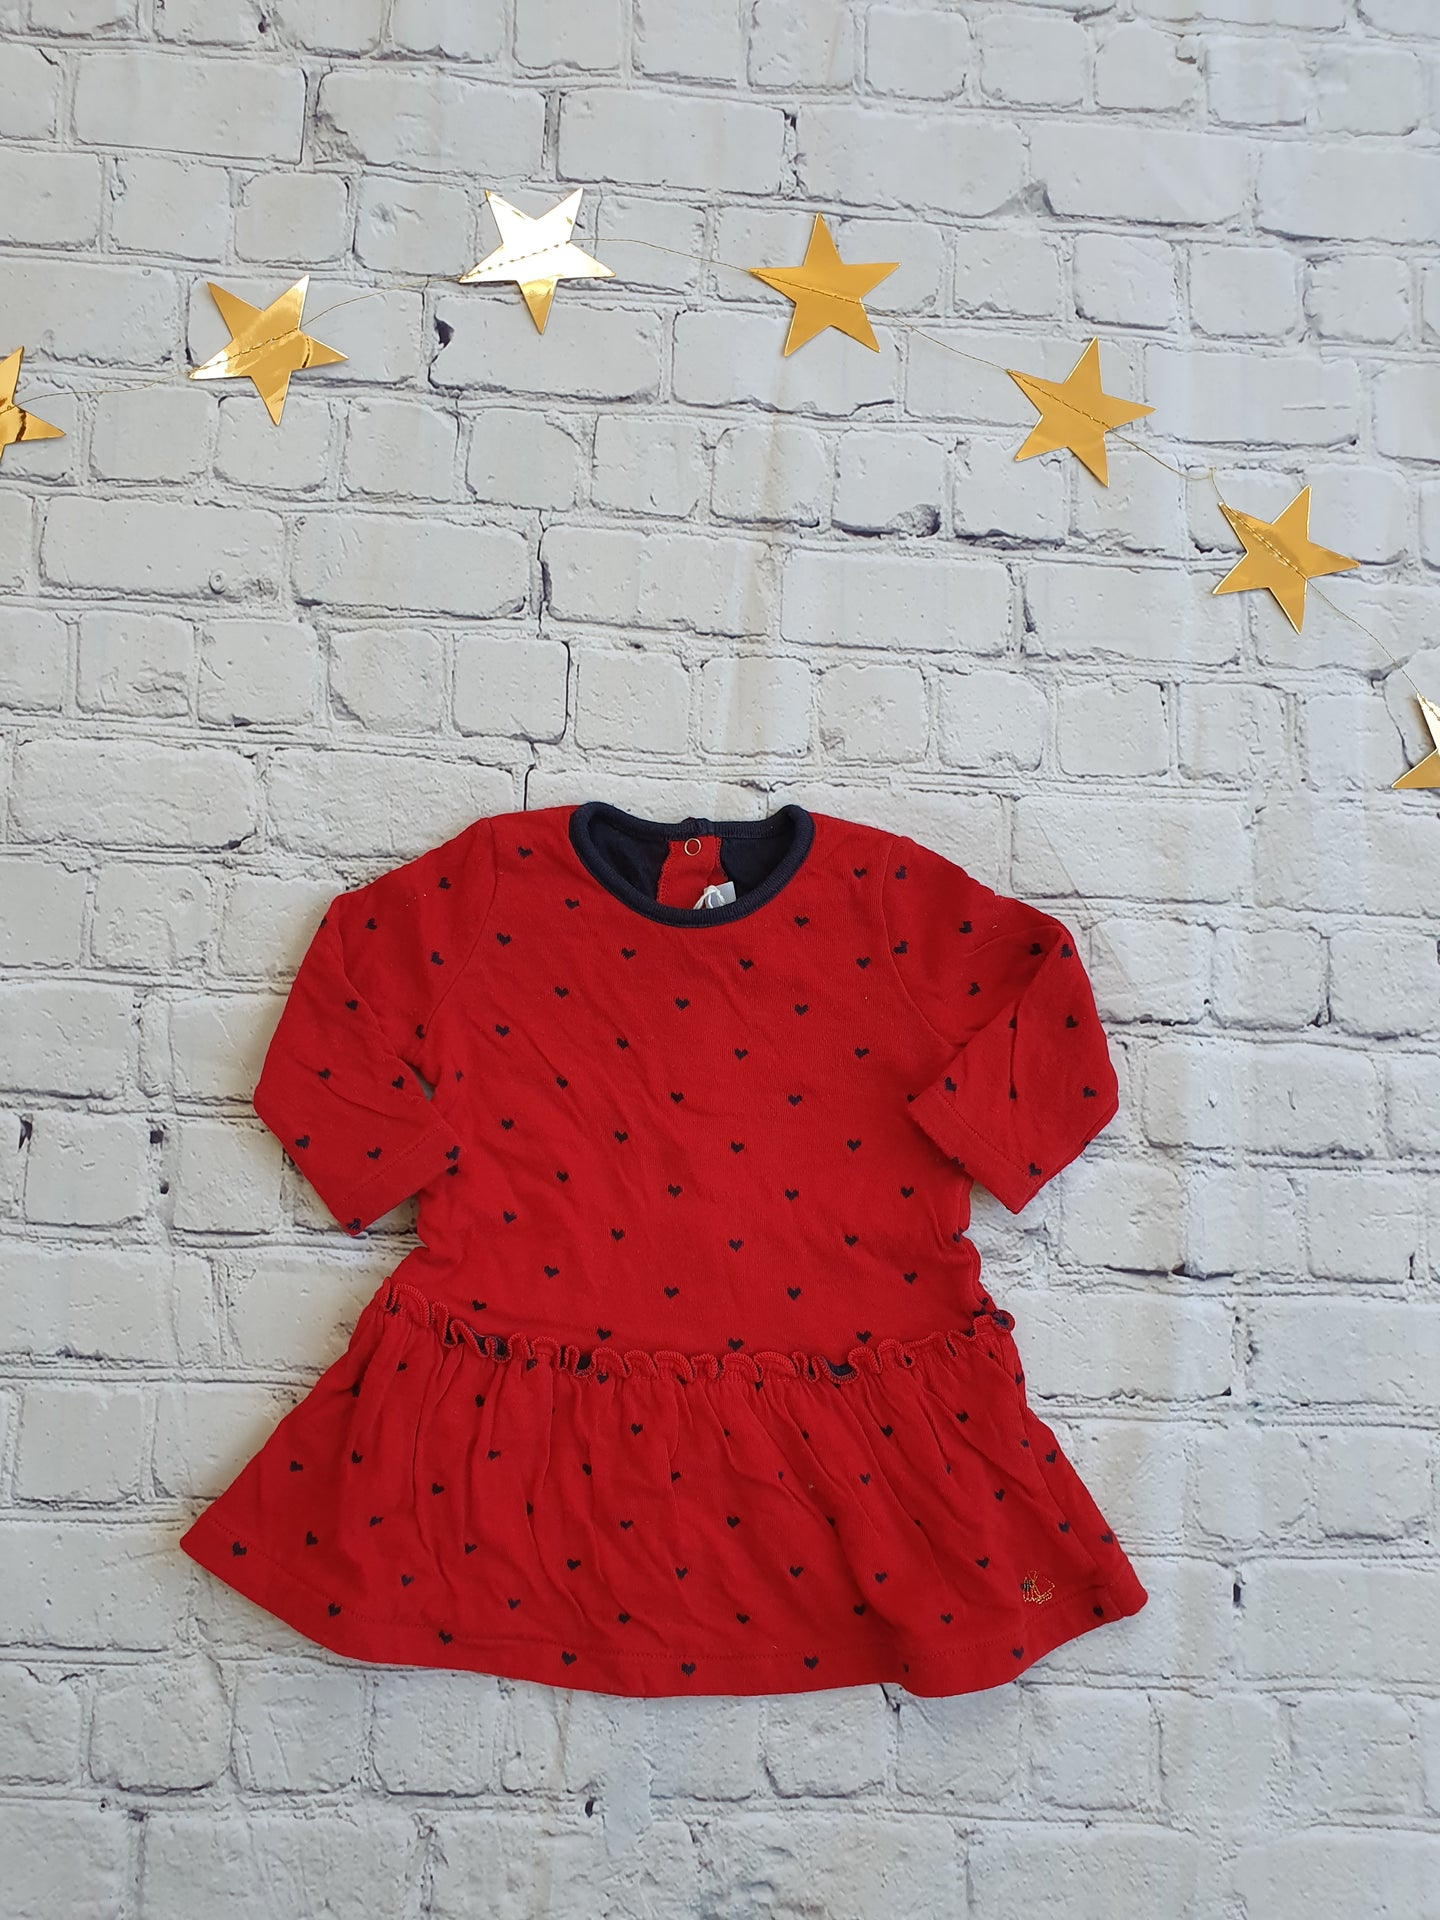 robe coeur petit bateau bebe occasion seconde main bebe vide dressing family affaire